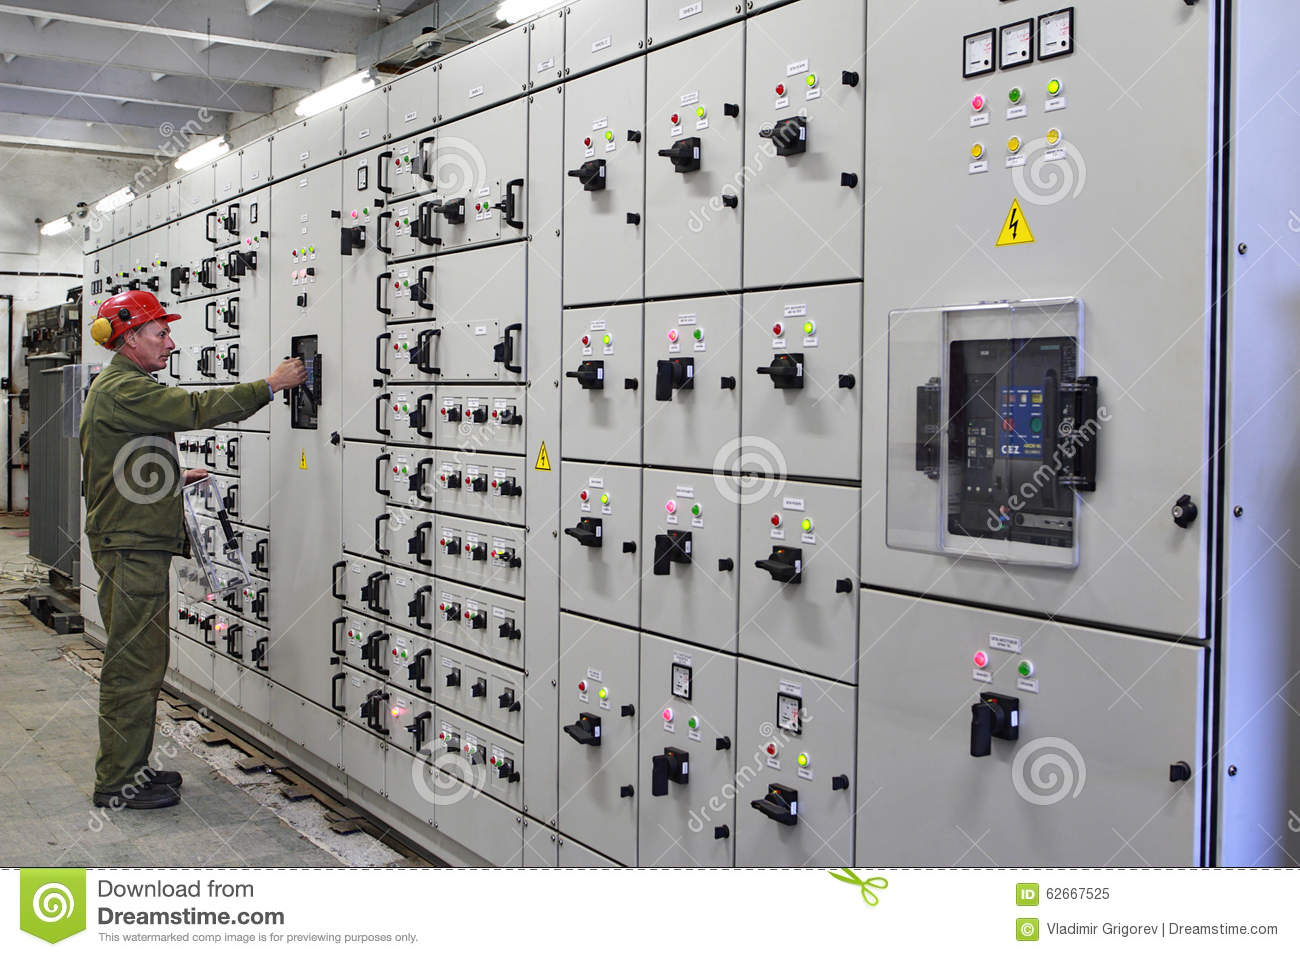 Electrical Engineer Equipment : Engineer electrician switches switchgear equipment